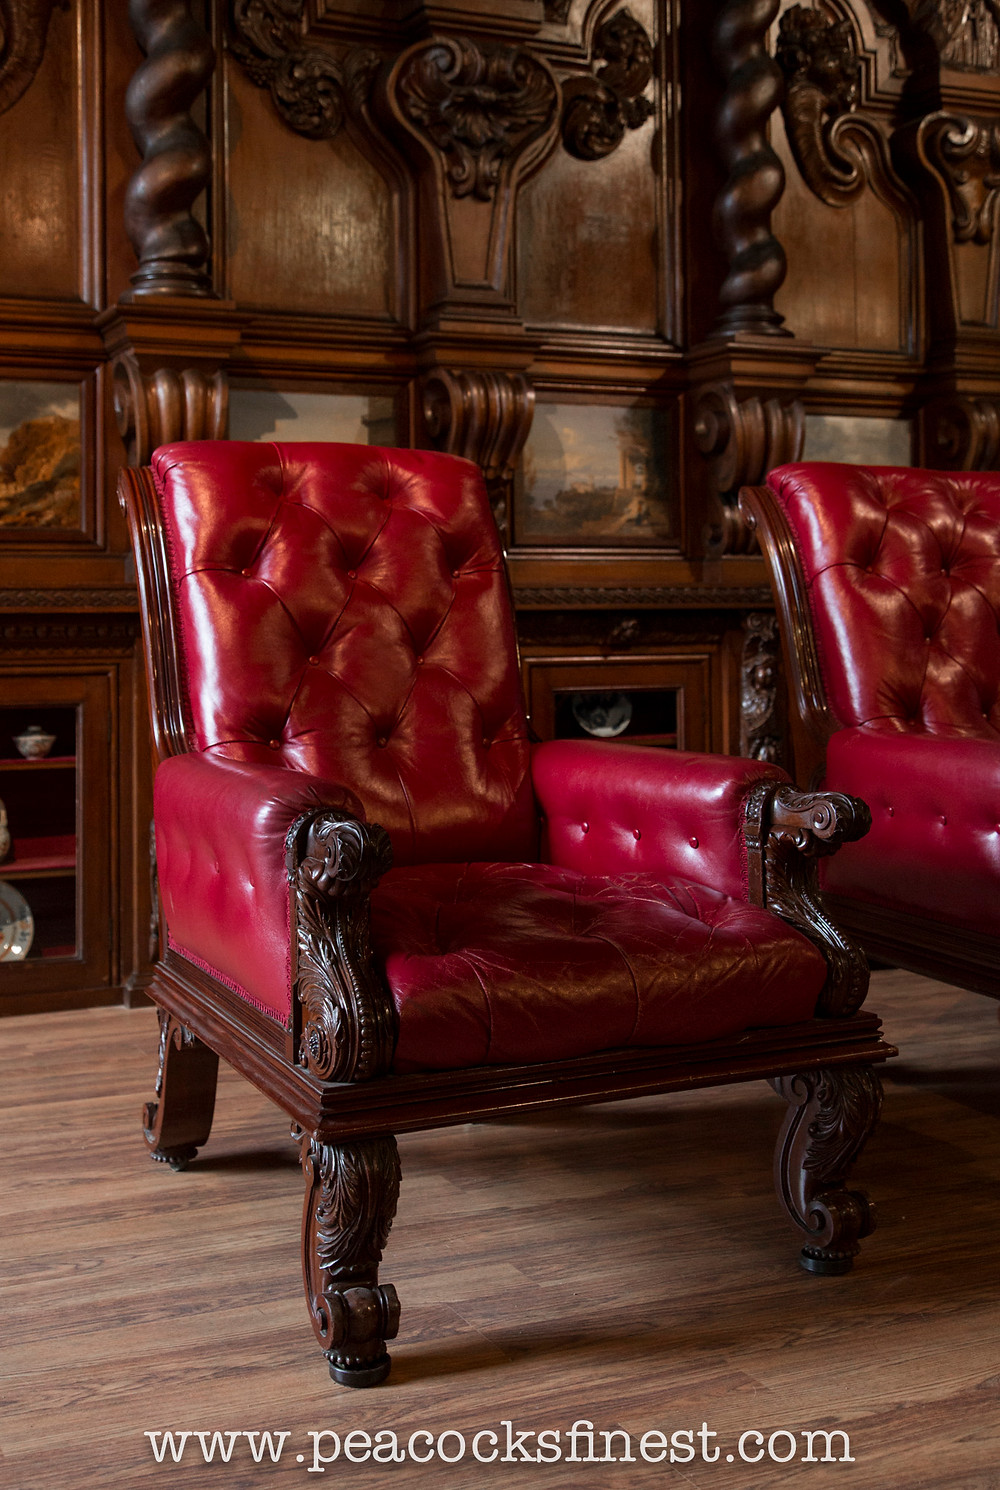 Regency library armchairs, possibly by Gillows, at Chatsworth House